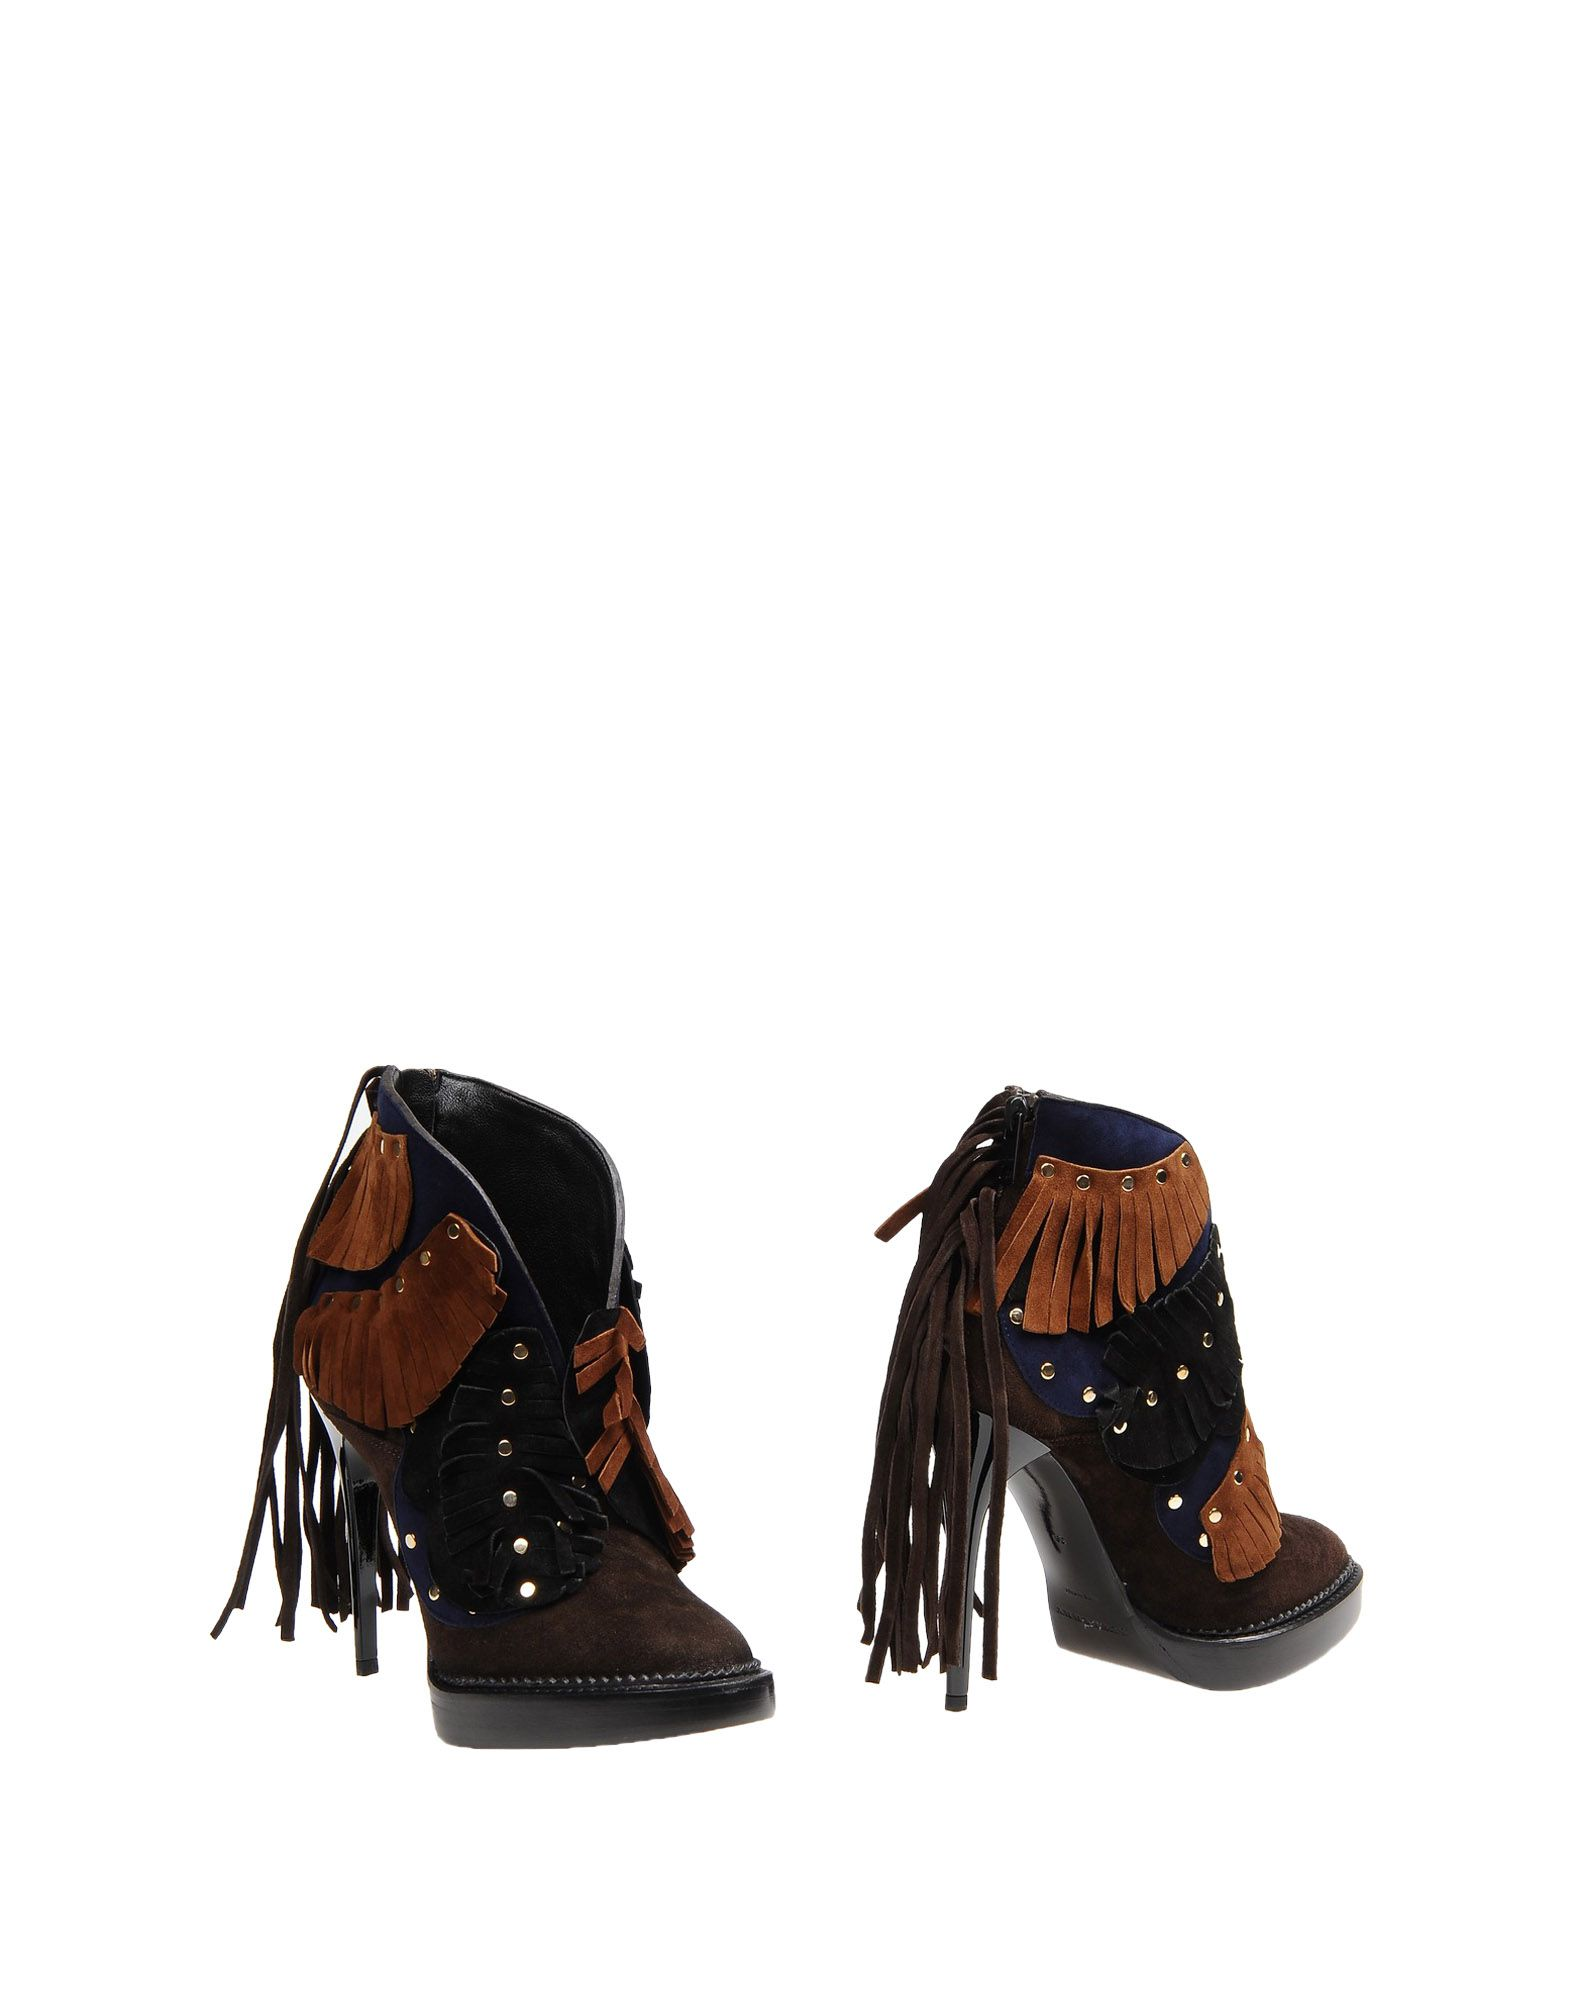 aea5bbe6a33 Buy burberry shoes for women - Best women s burberry shoes shop ...